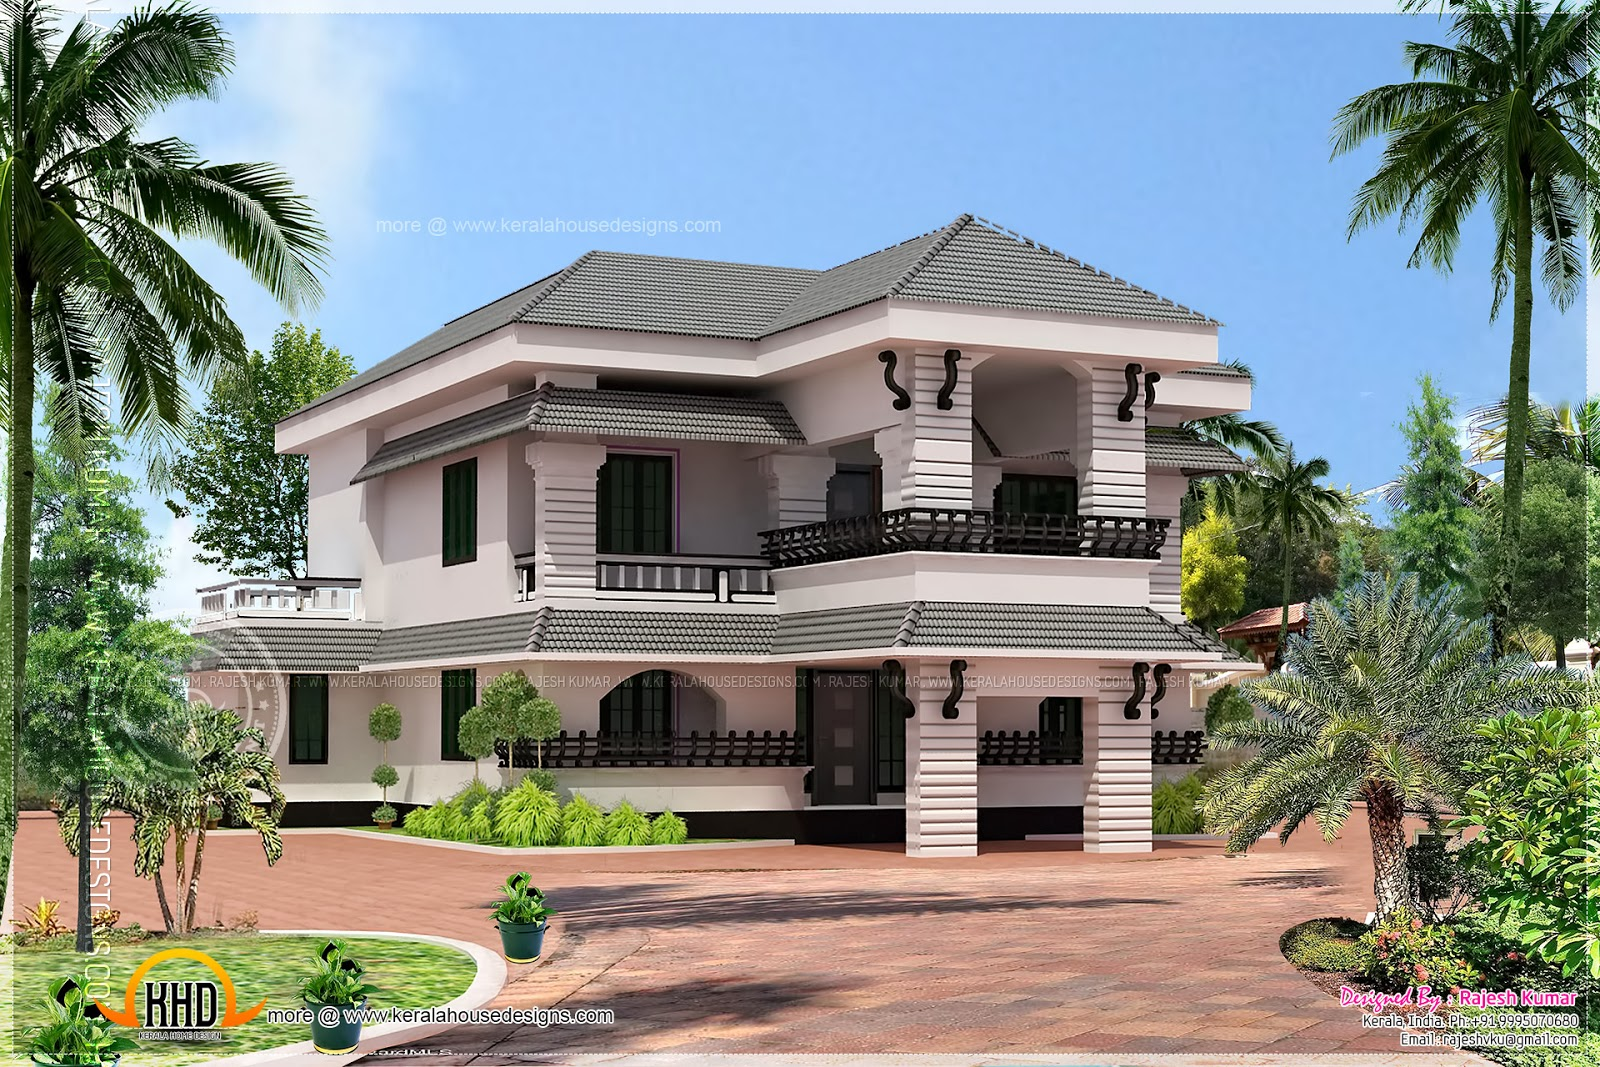 Malabar model home design kerala home design and floor plans for Designers homes